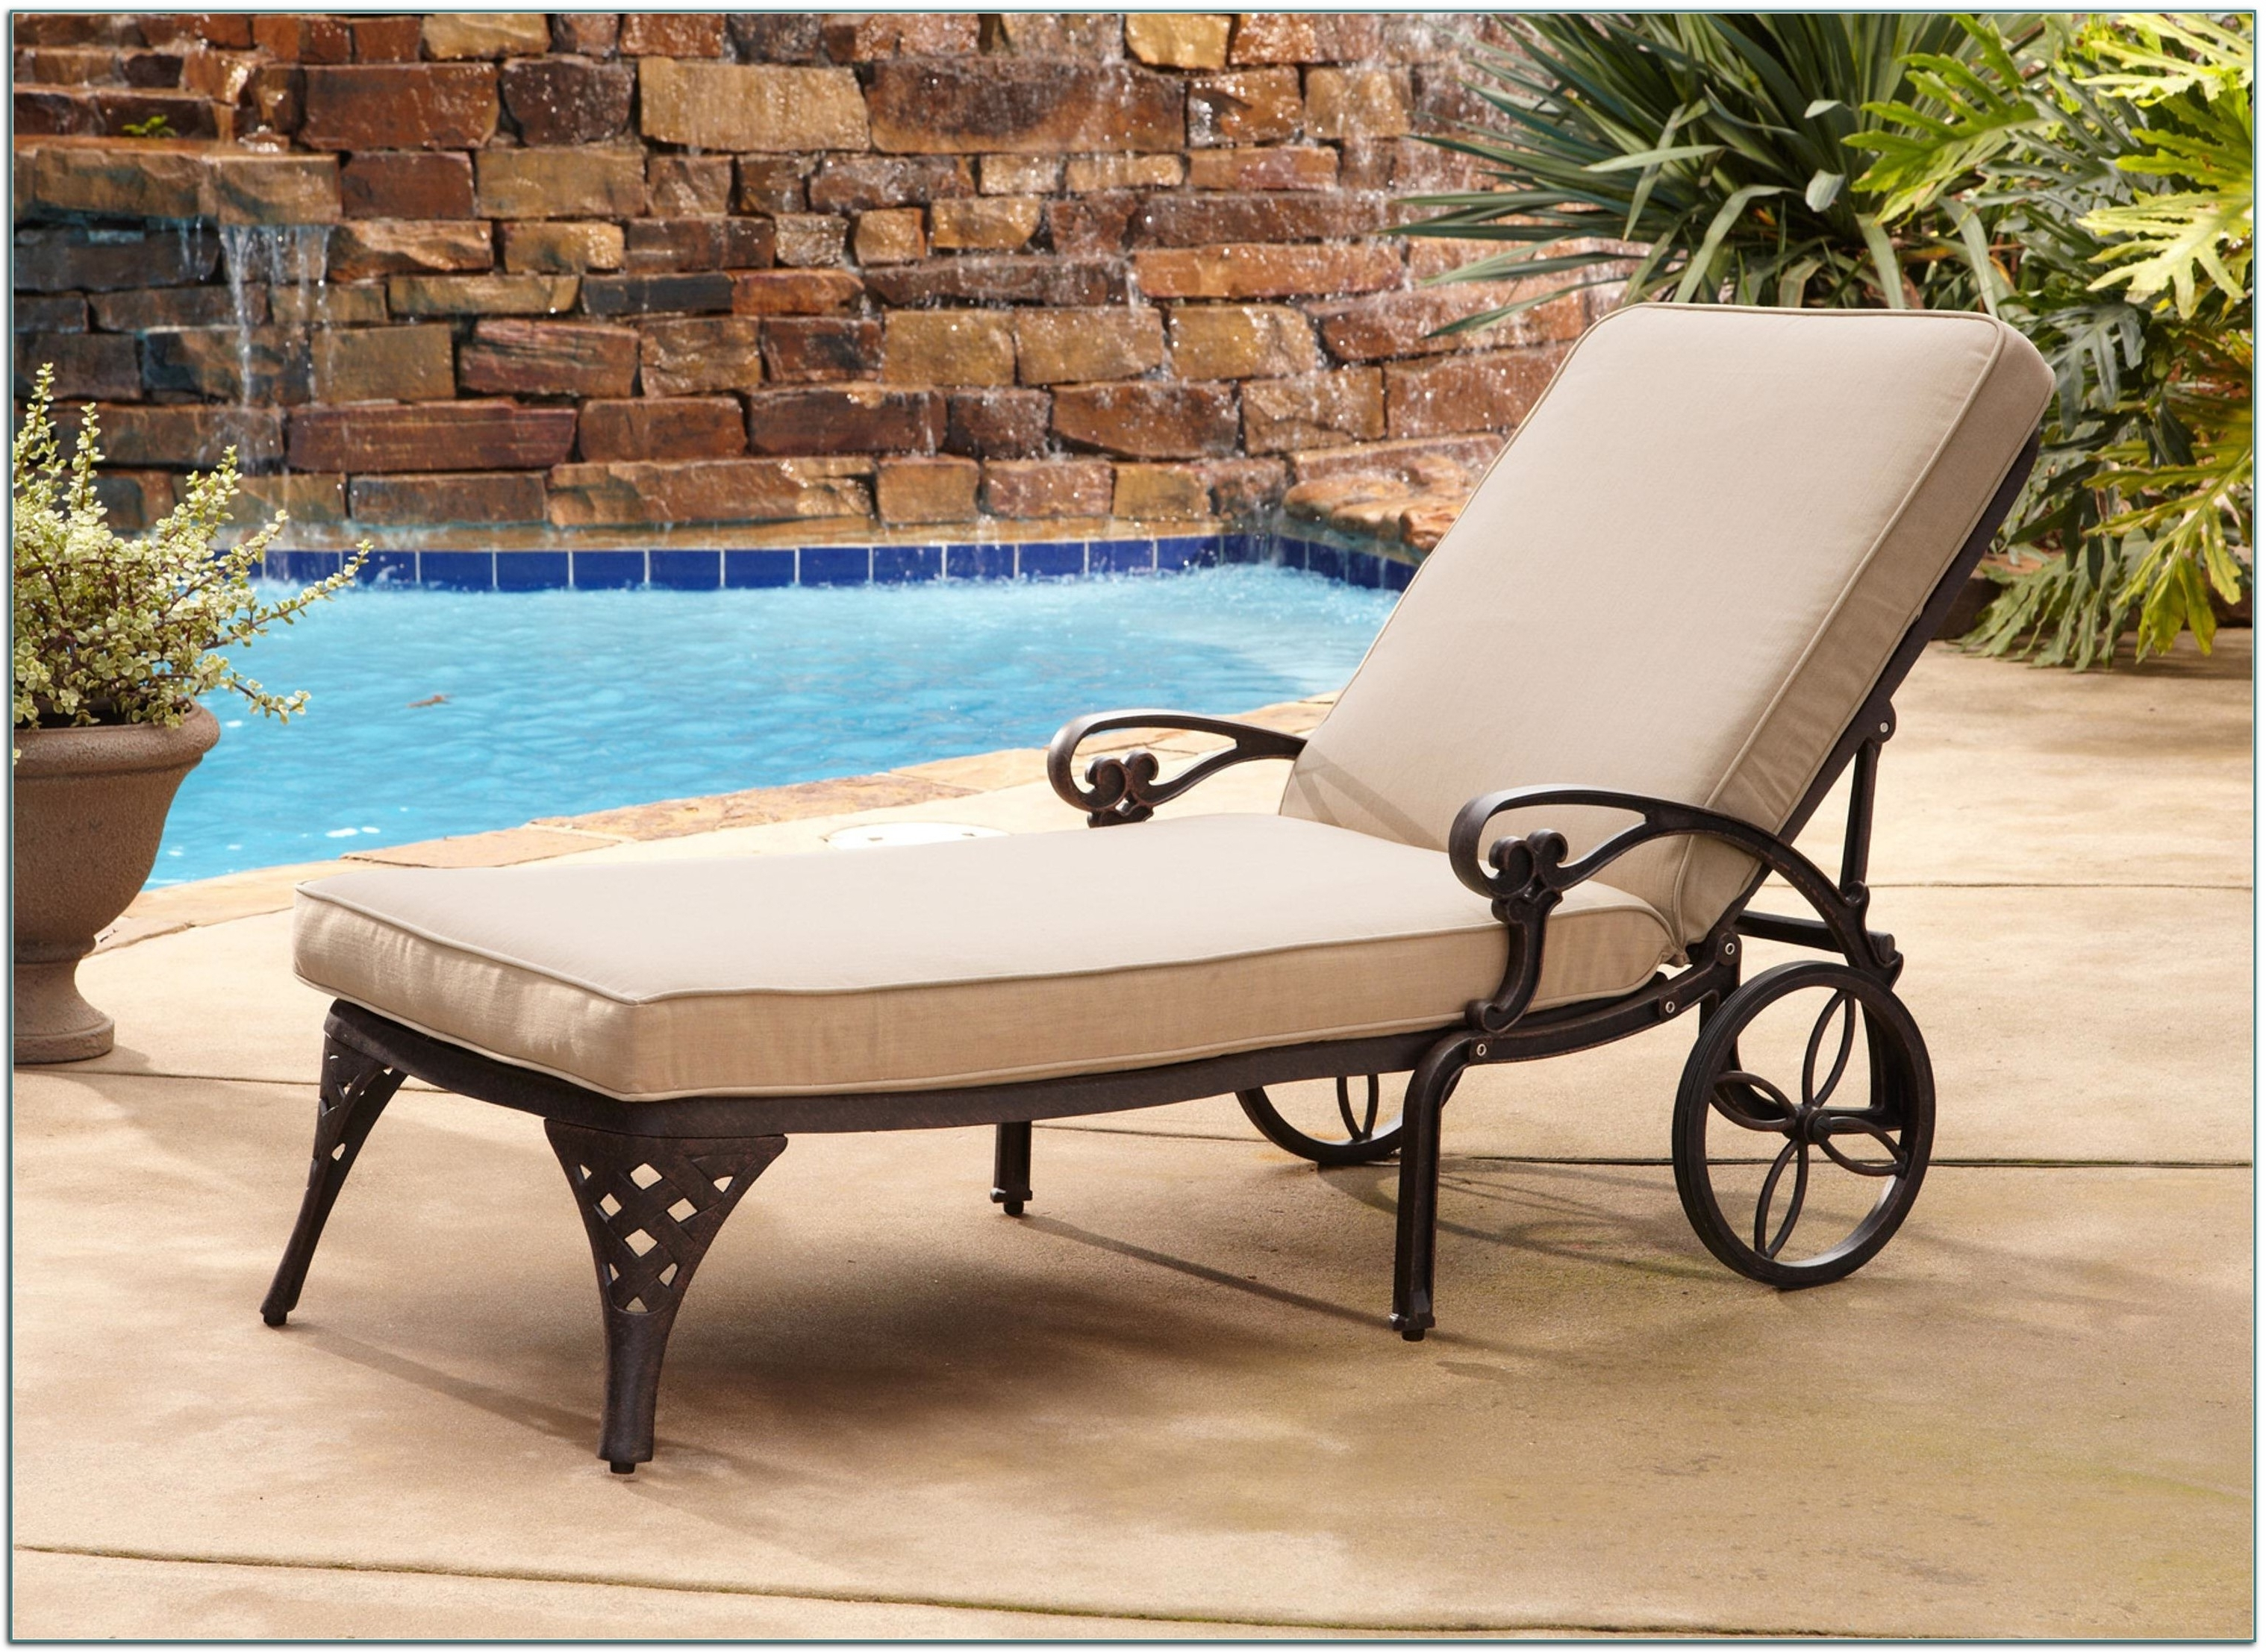 Best And Newest Chaise Lounge Chairs Outdoor Pool • Lounge Chairs Ideas Within Heavy Duty Outdoor Chaise Lounge Chairs (View 1 of 15)